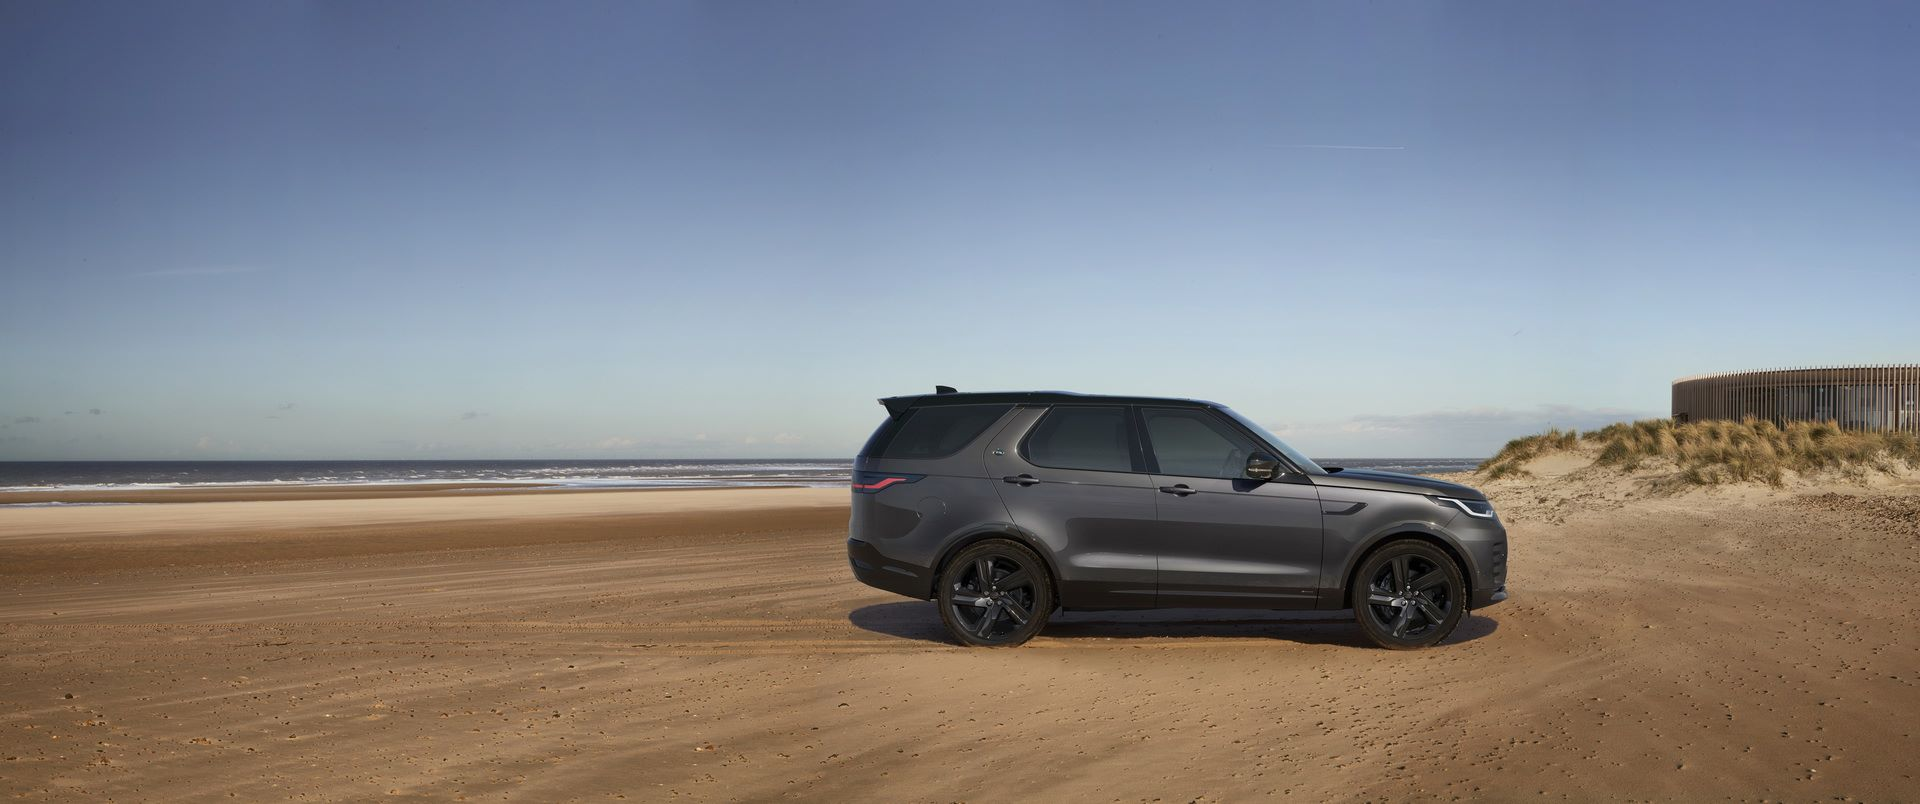 2021-Land-Rover-Discovery-81